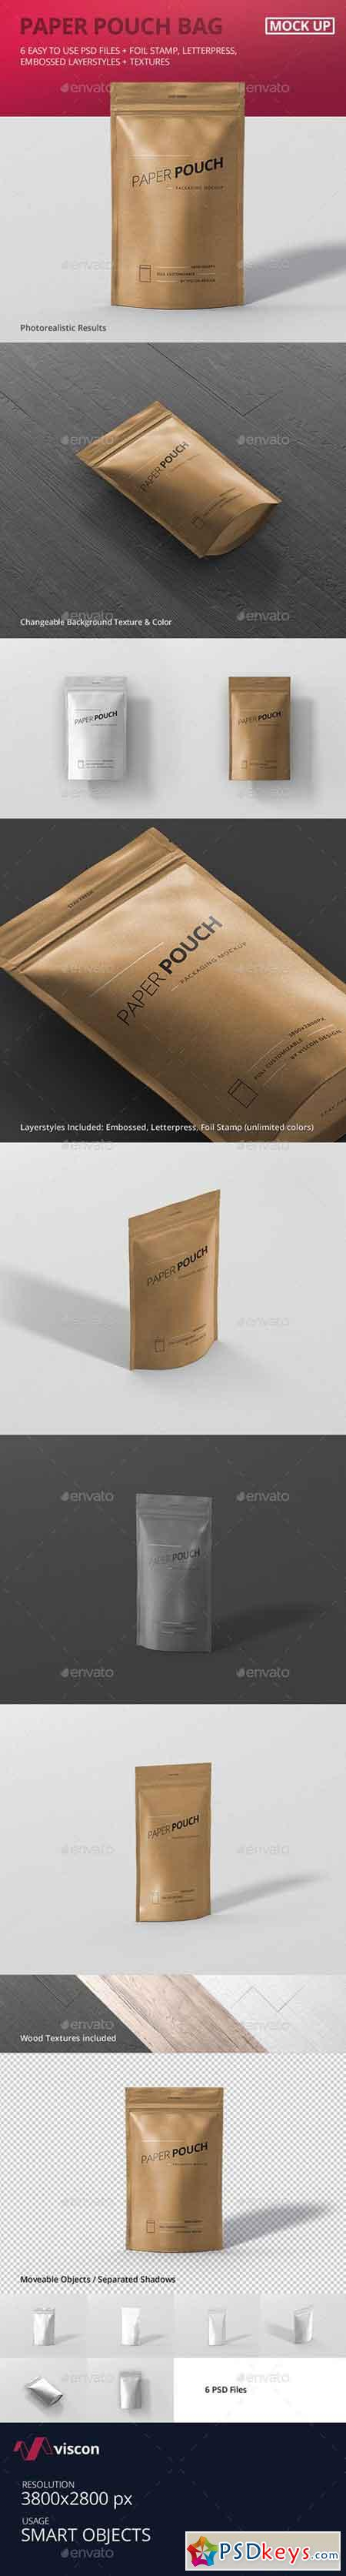 Paper Pouch Bag Mockup 19384276